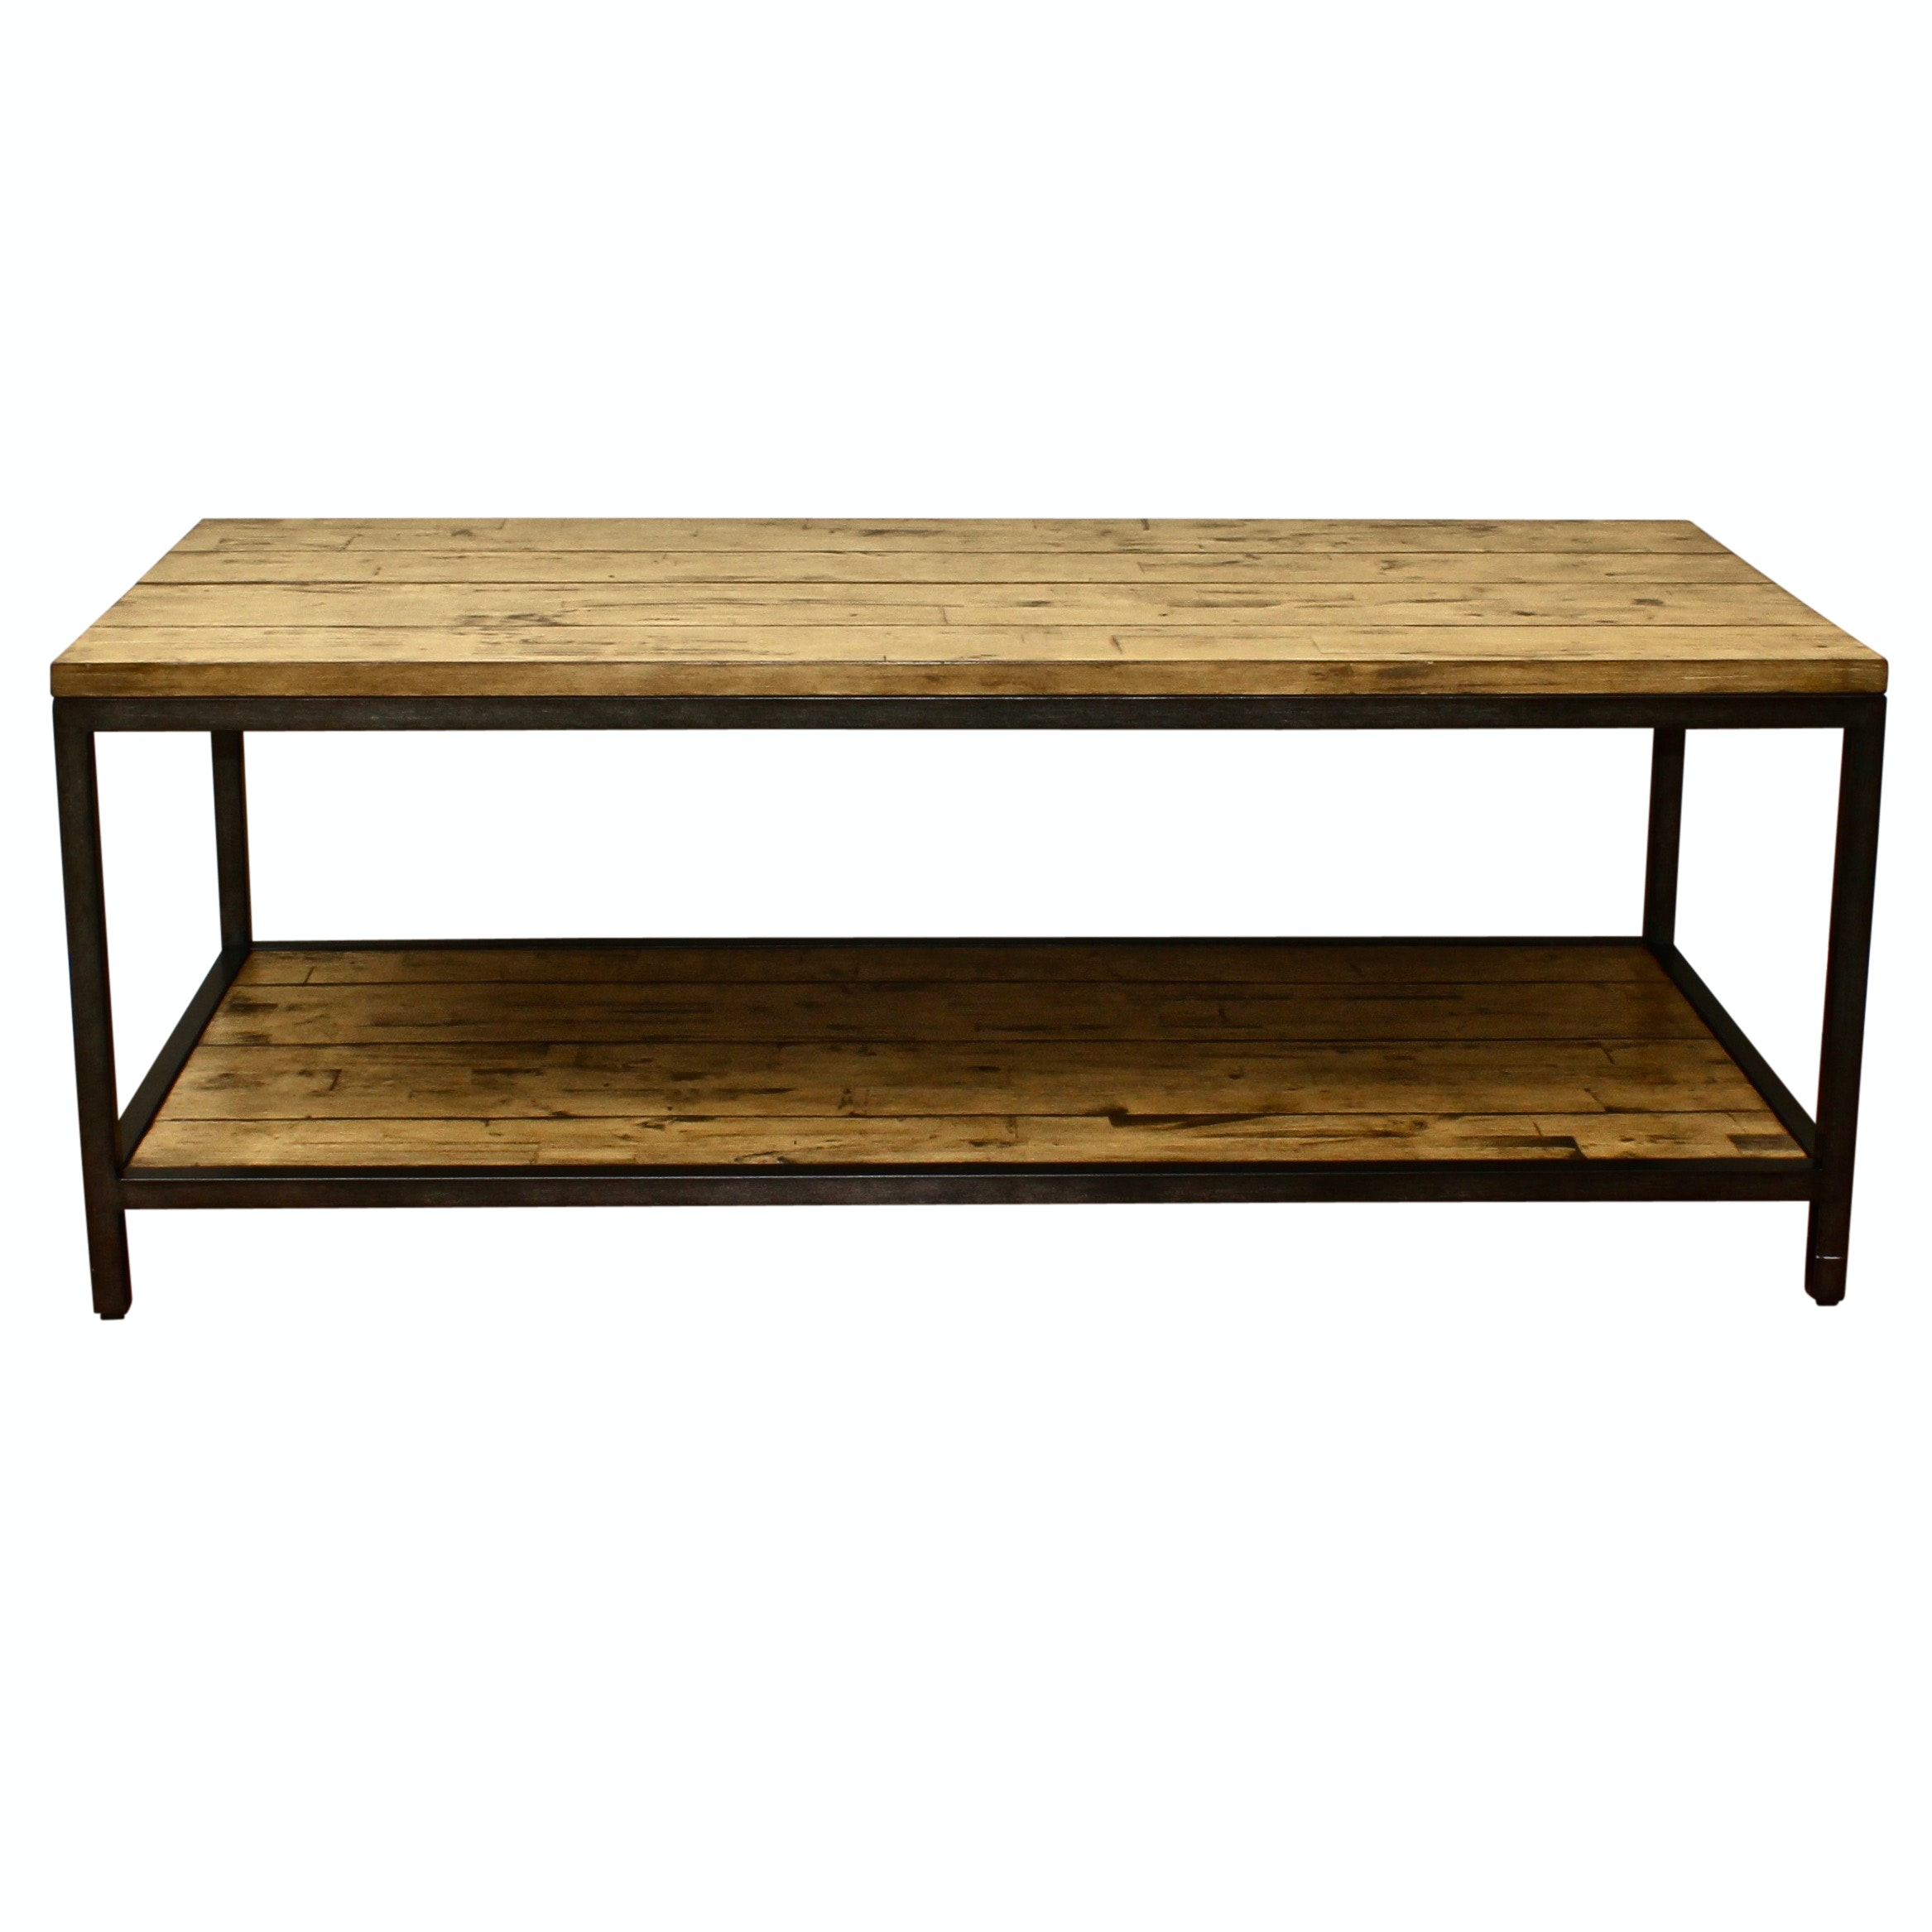 Distressed Wooden and Metal Ballard Designs Coffee Table